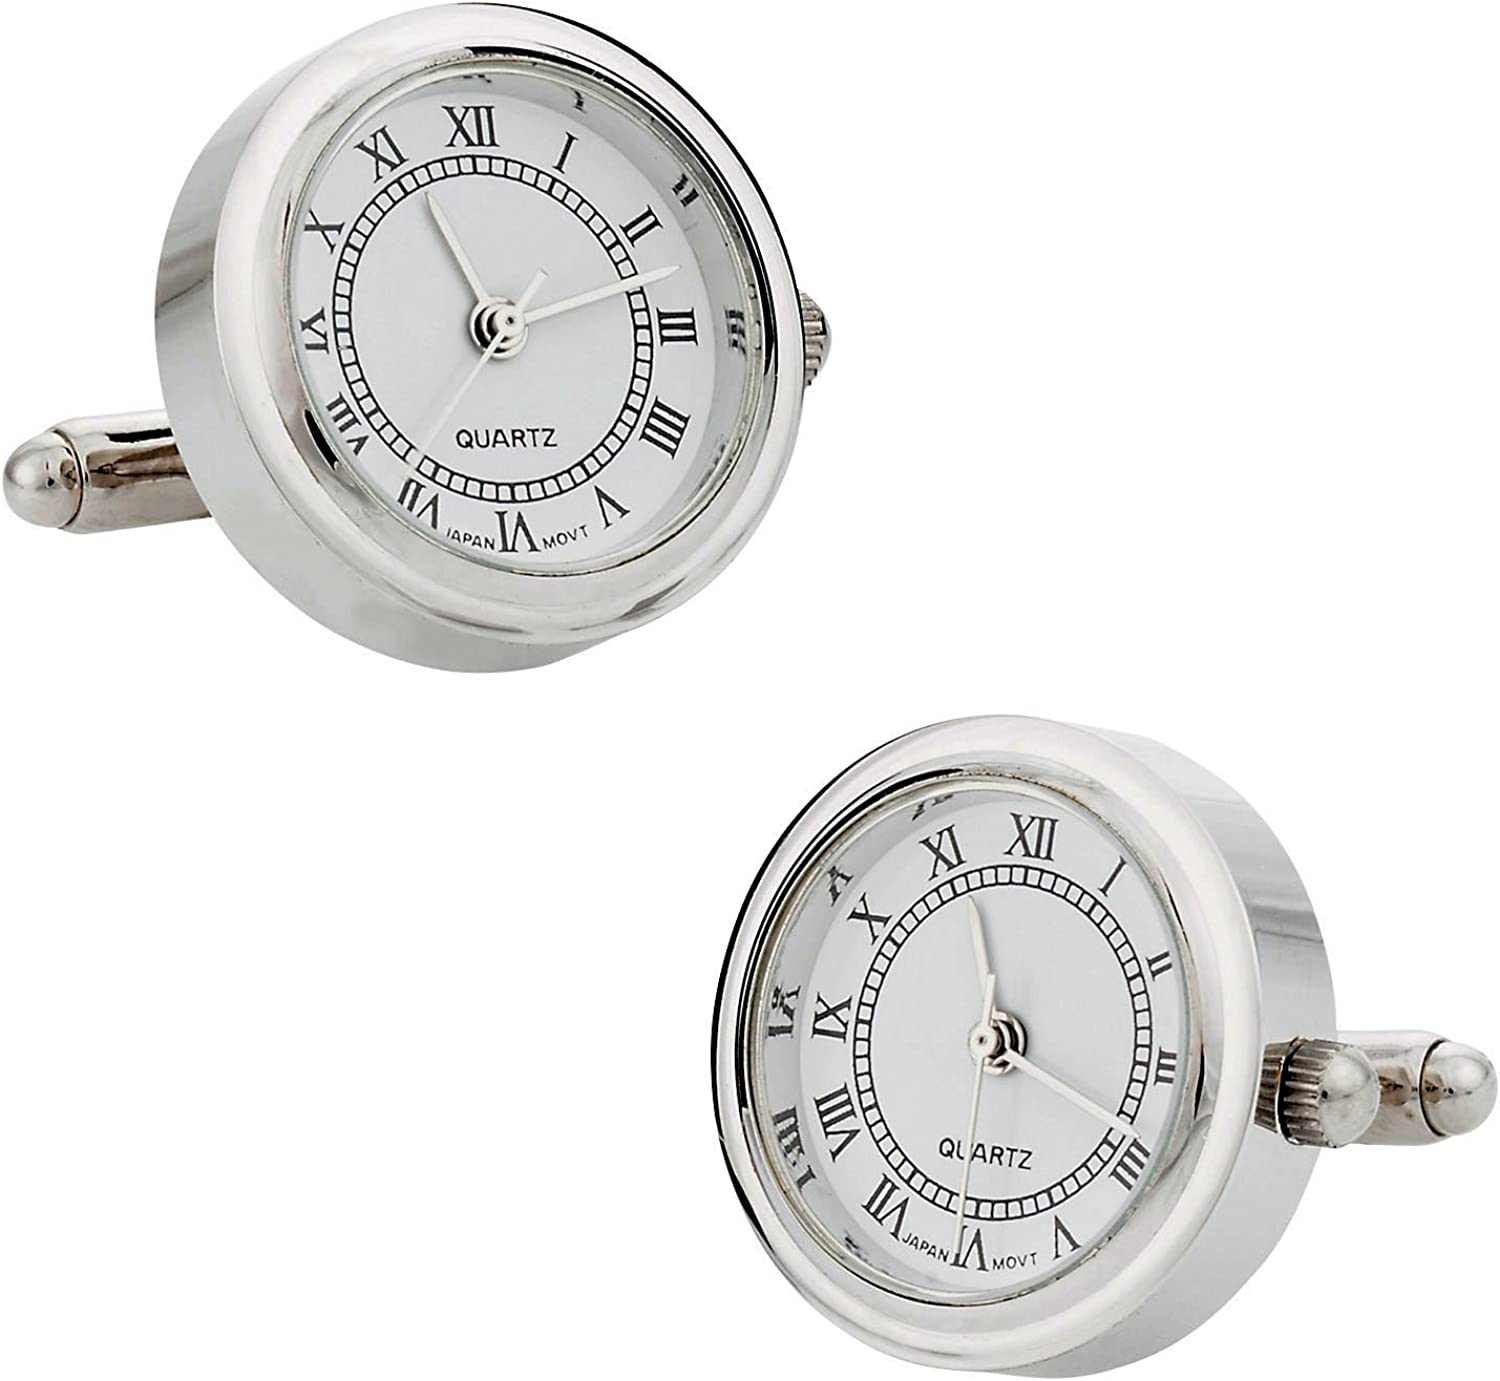 Round Silver Working Functional Watch Cufflinks with Presentation Box Gift Idea for Him